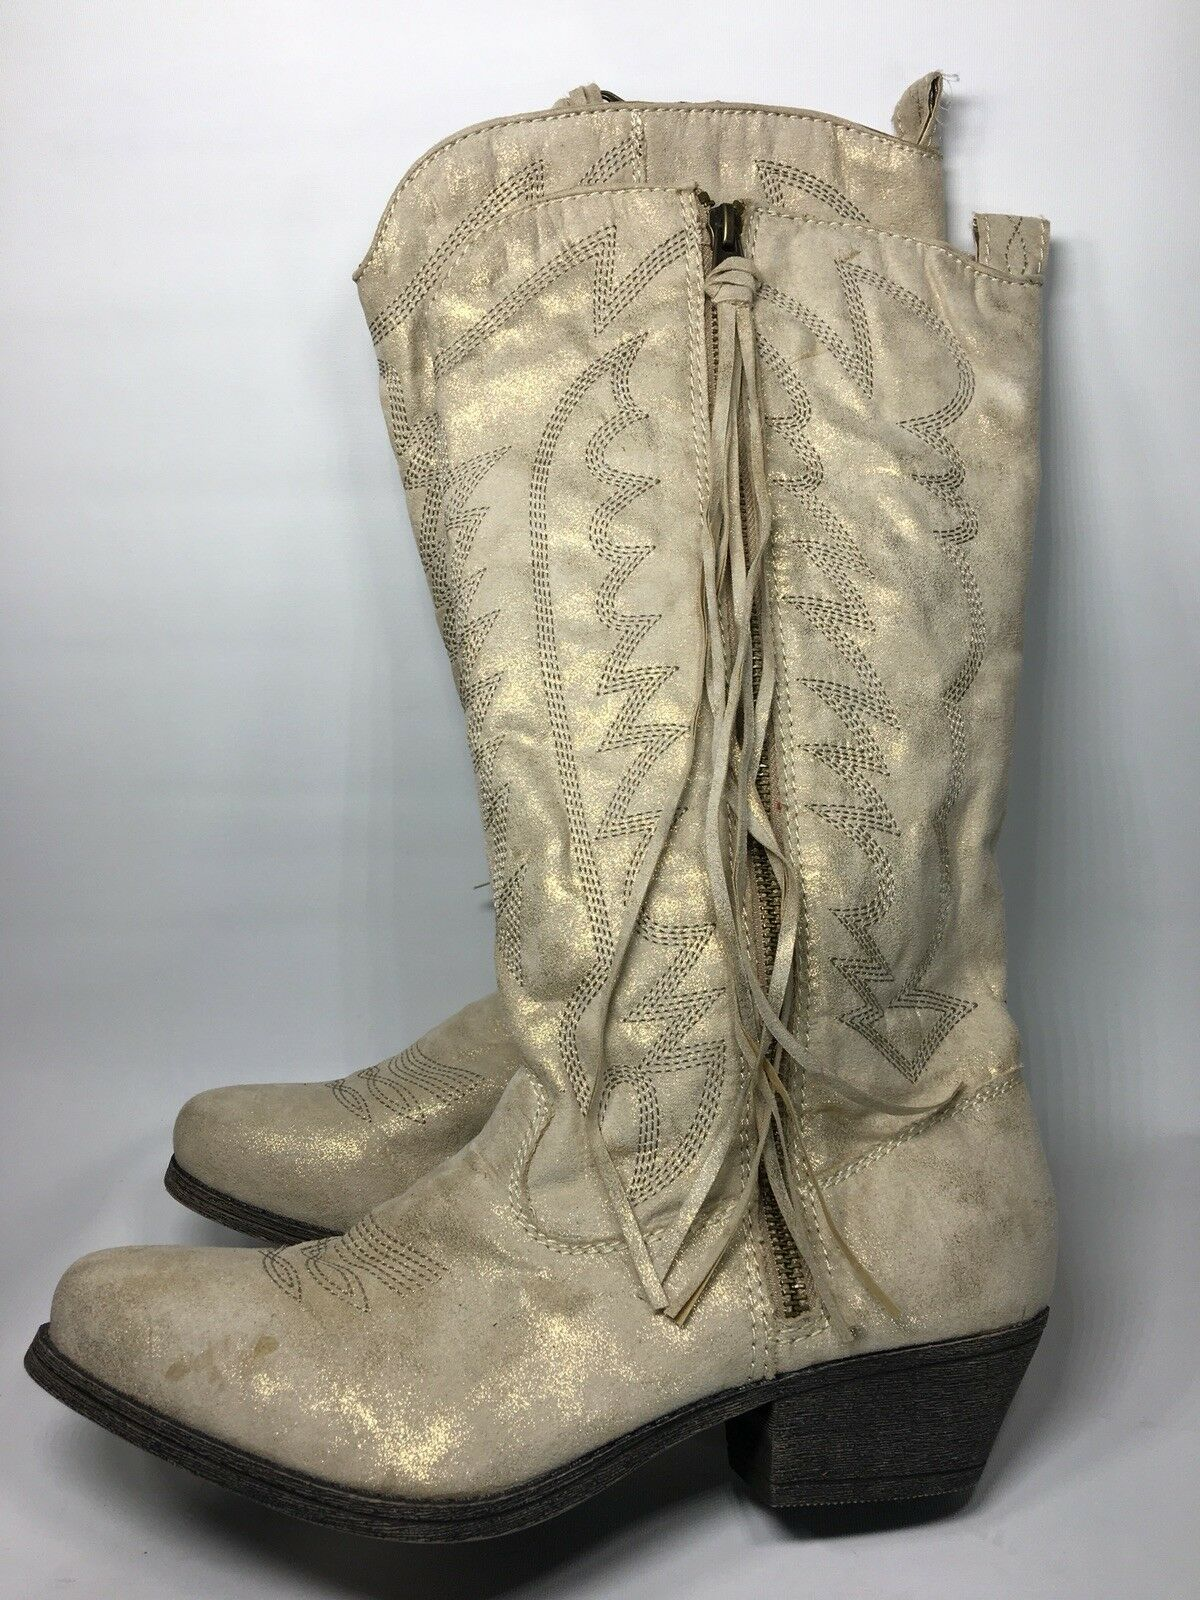 Buckle Store Fabric Upper Western Cowgirl Boots Beige gold Sz 10